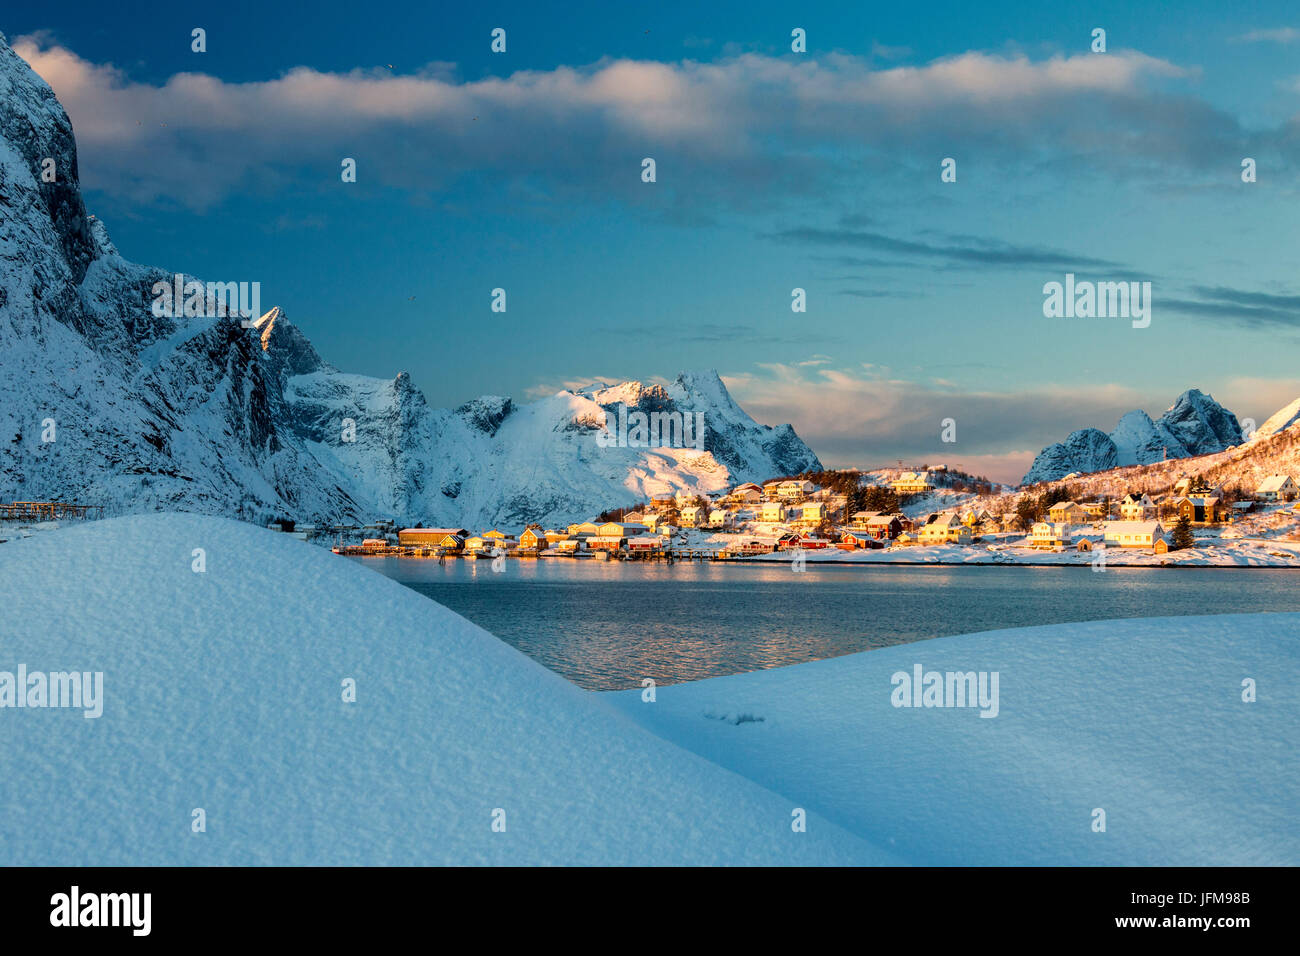 The blue color of dusk on the fishing village and the snowy peaks Kvalvika Andøya Reine Nordland Lofoten Islands - Stock Image